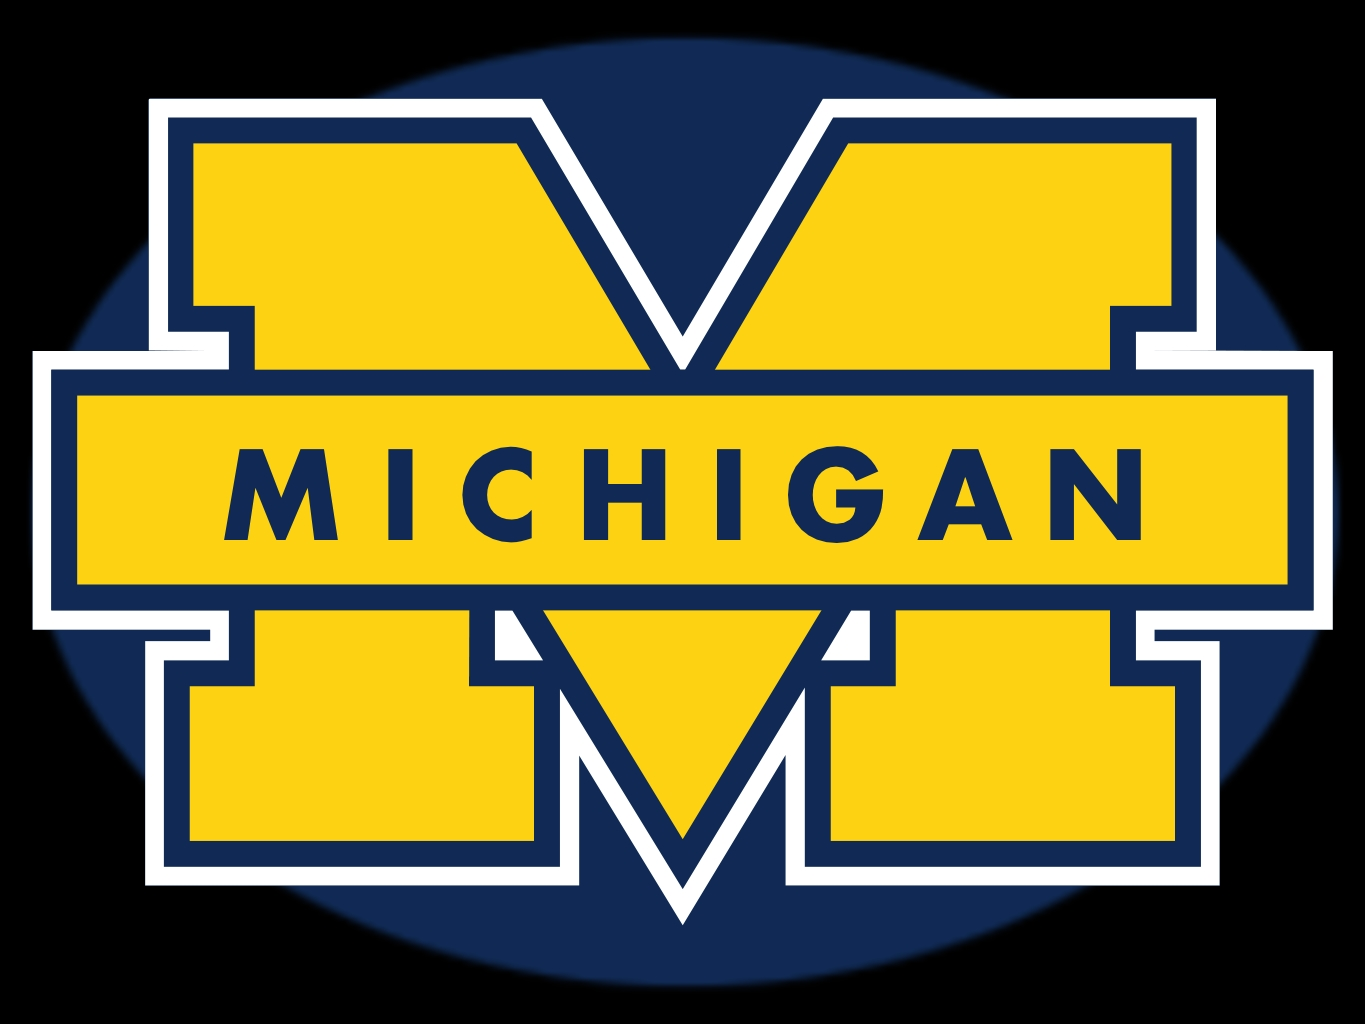 Michigan football clipart hd.